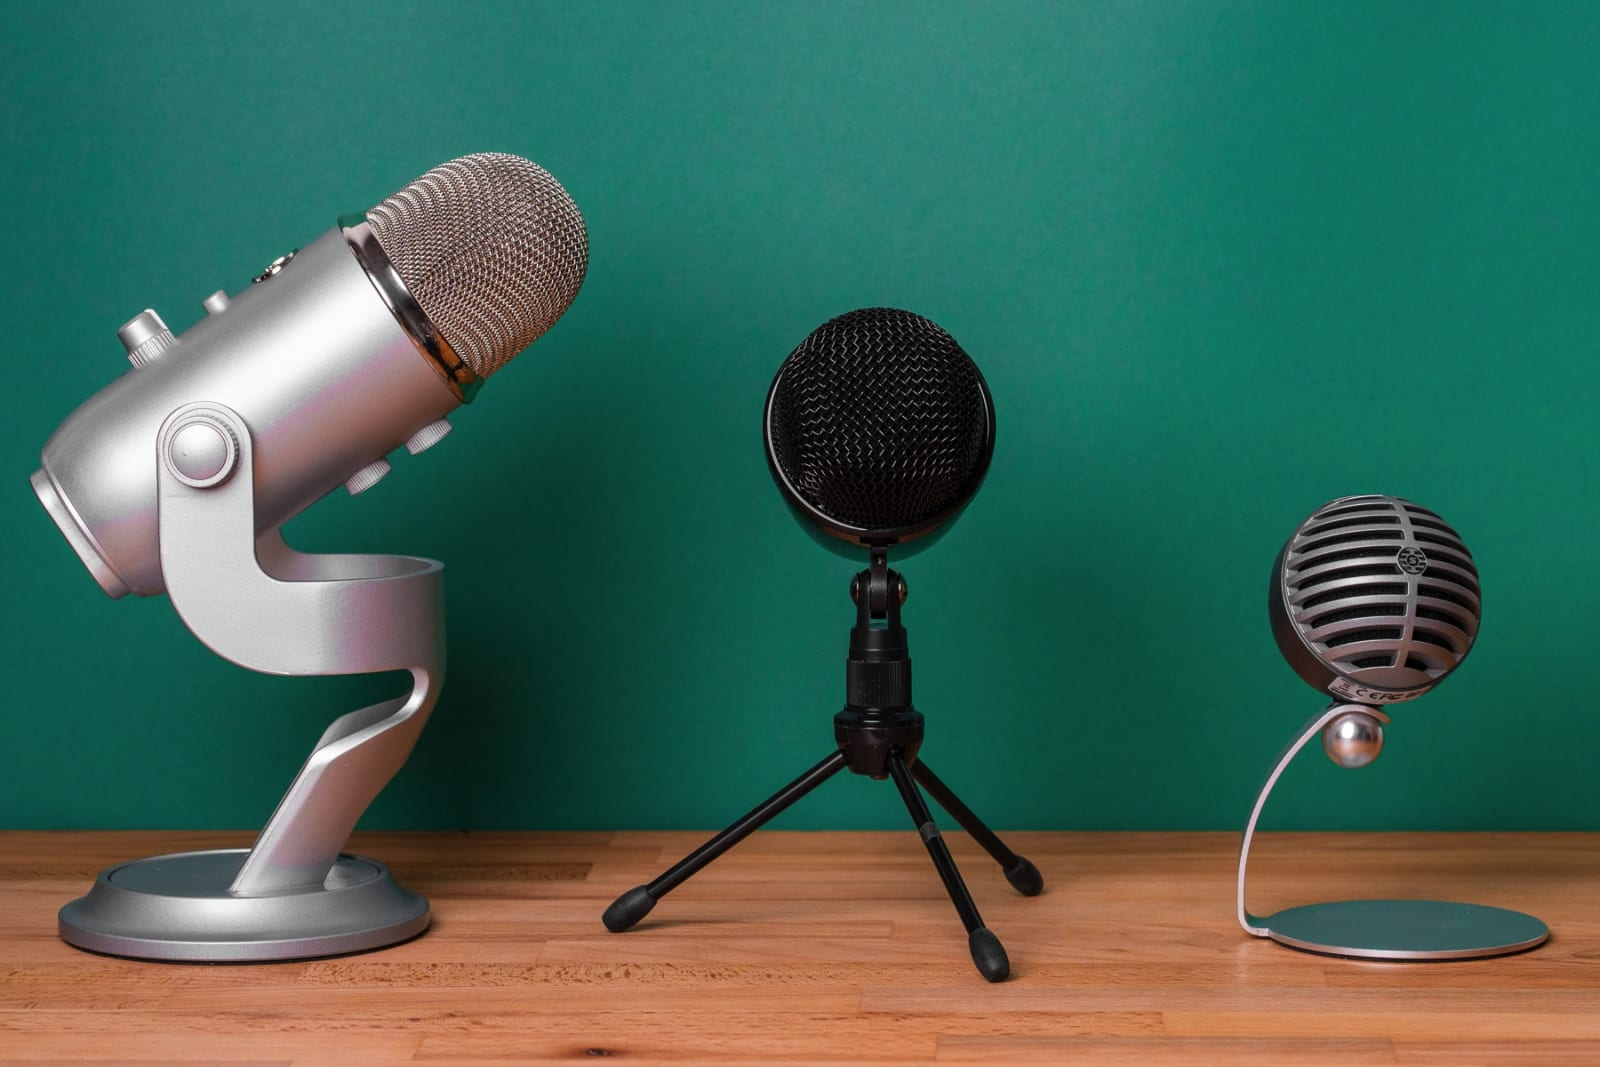 The best USB microphone